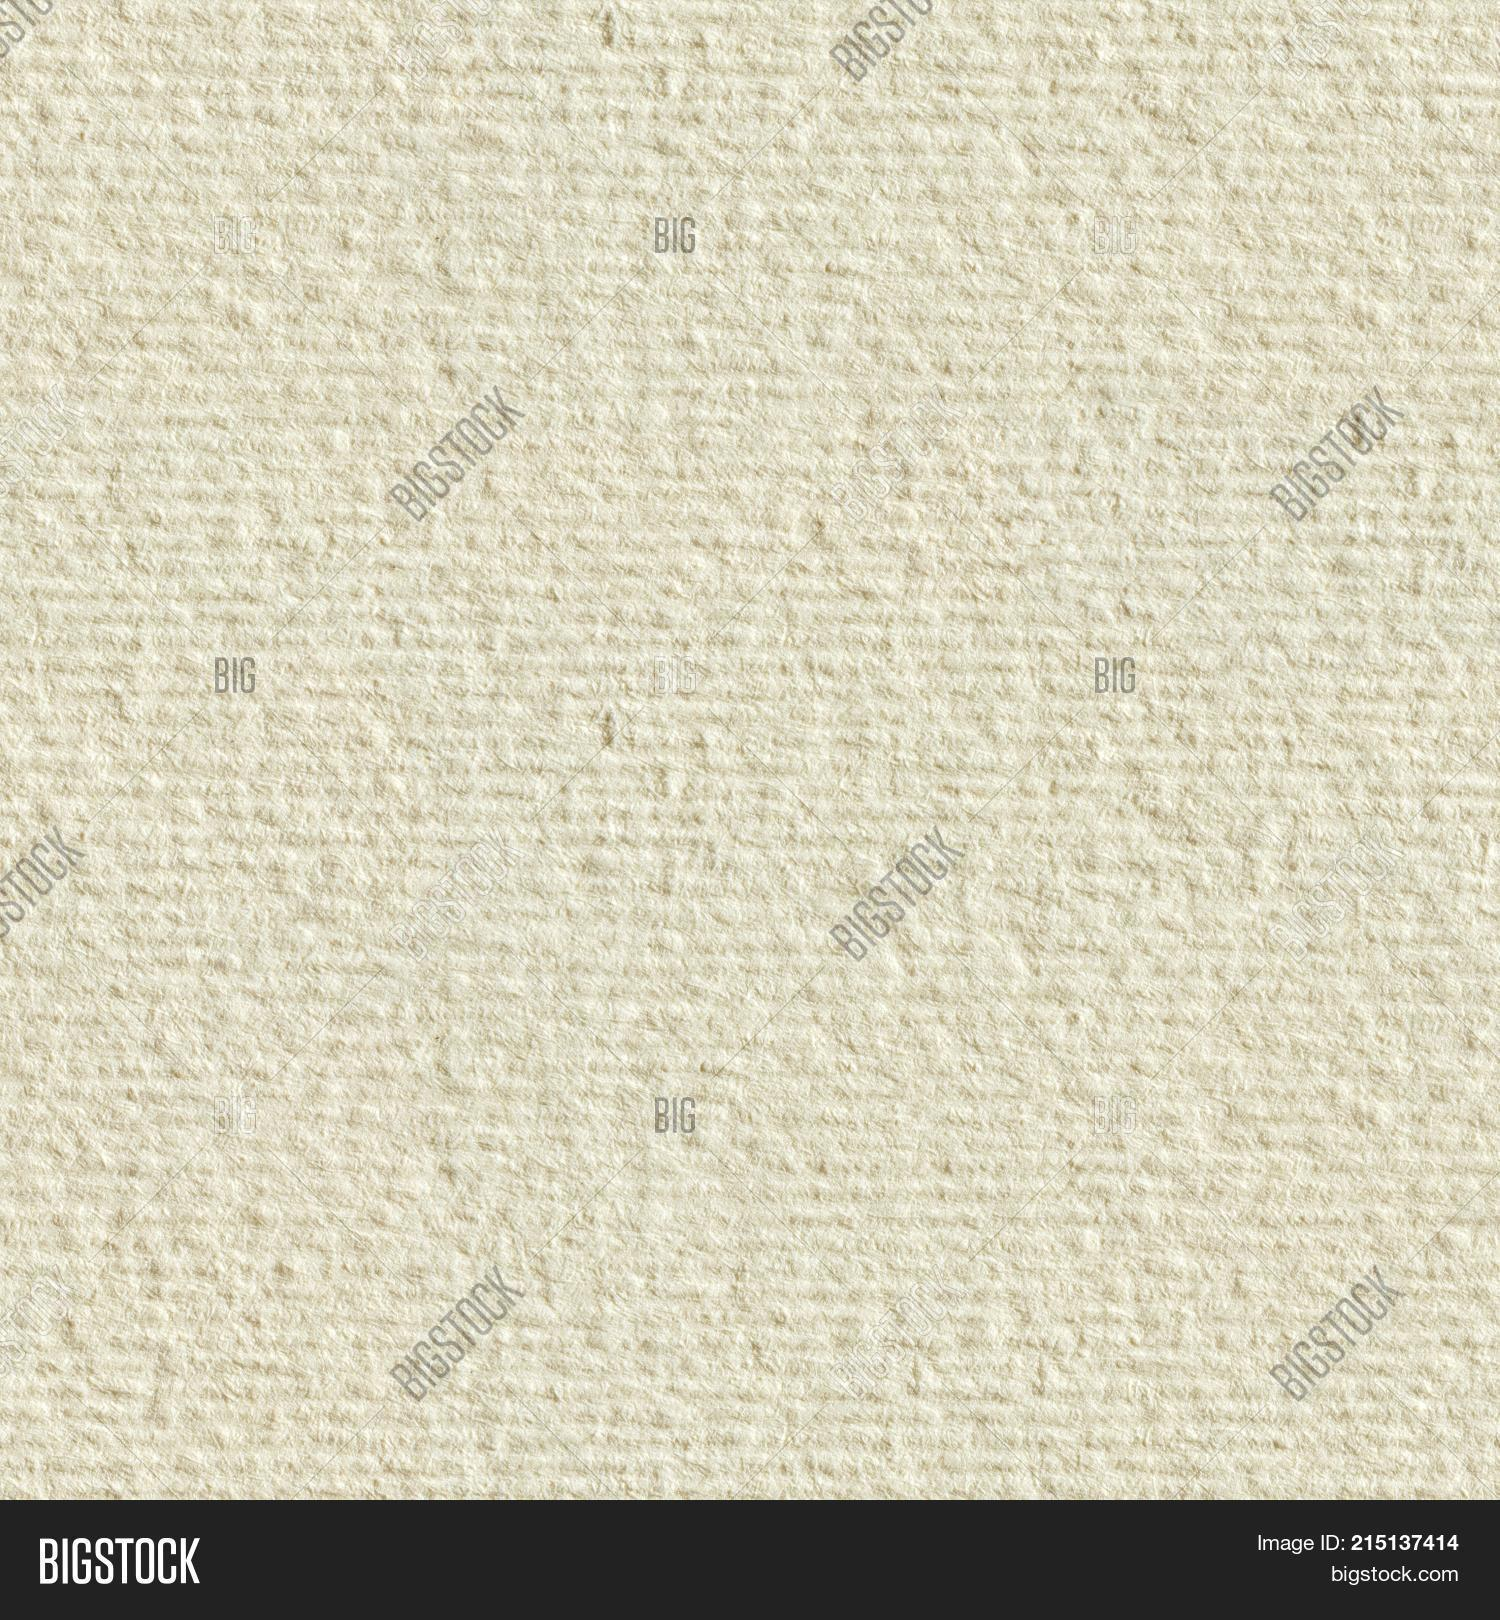 Cream Textured Paper Seamless Square Texture Tile Ready High Resolution Photo